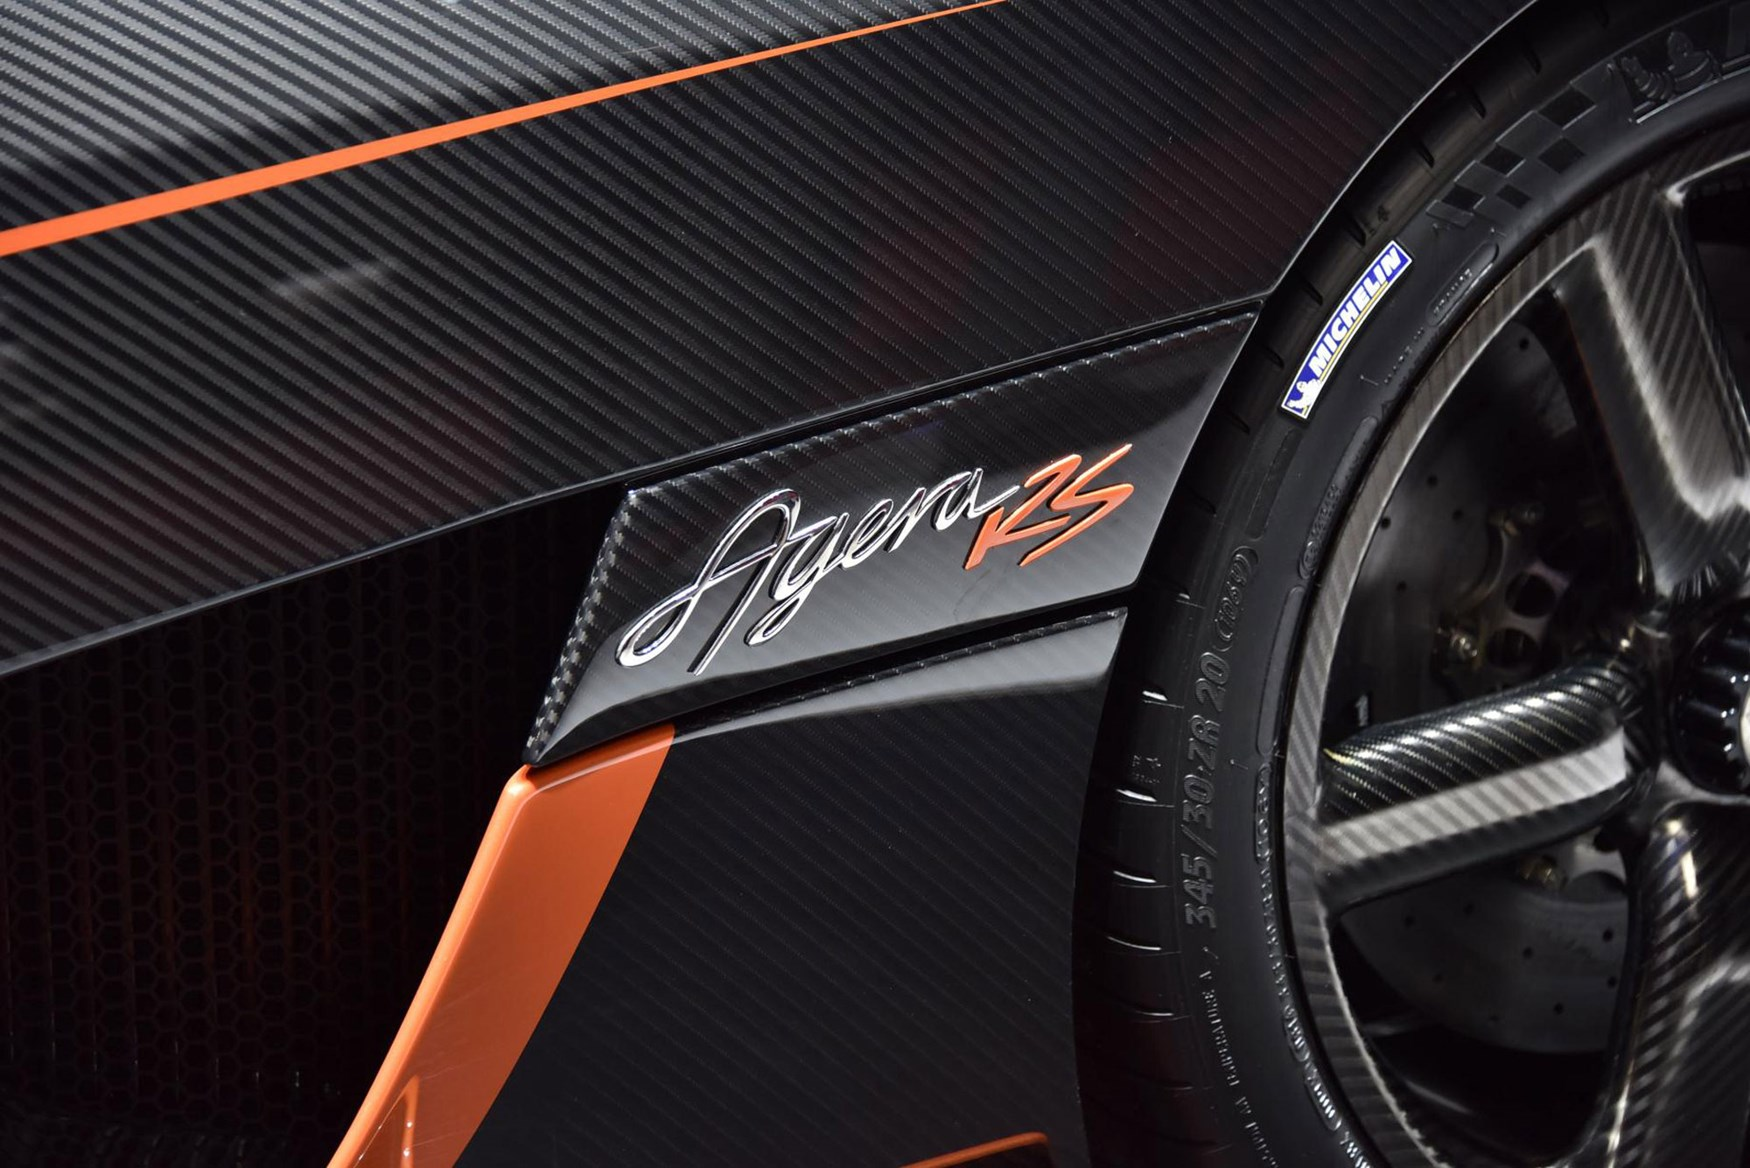 koenigsegg regera show mode with Koenigsegg Agera Rs And Regera The Power Madness Continues on Get Closer To The Cars Of The Geneva Motor Show Than Hu 1689878006 furthermore Koenigsegg Regera Hypercar First Look Details also Koenigsegg Regera Z Bezsensowna Funkcja Autoskin 5120 moreover First Look Koenigsegg Regera With Christian Von Koenigsegg also A29lbmlnc2VnZyBkb29y.